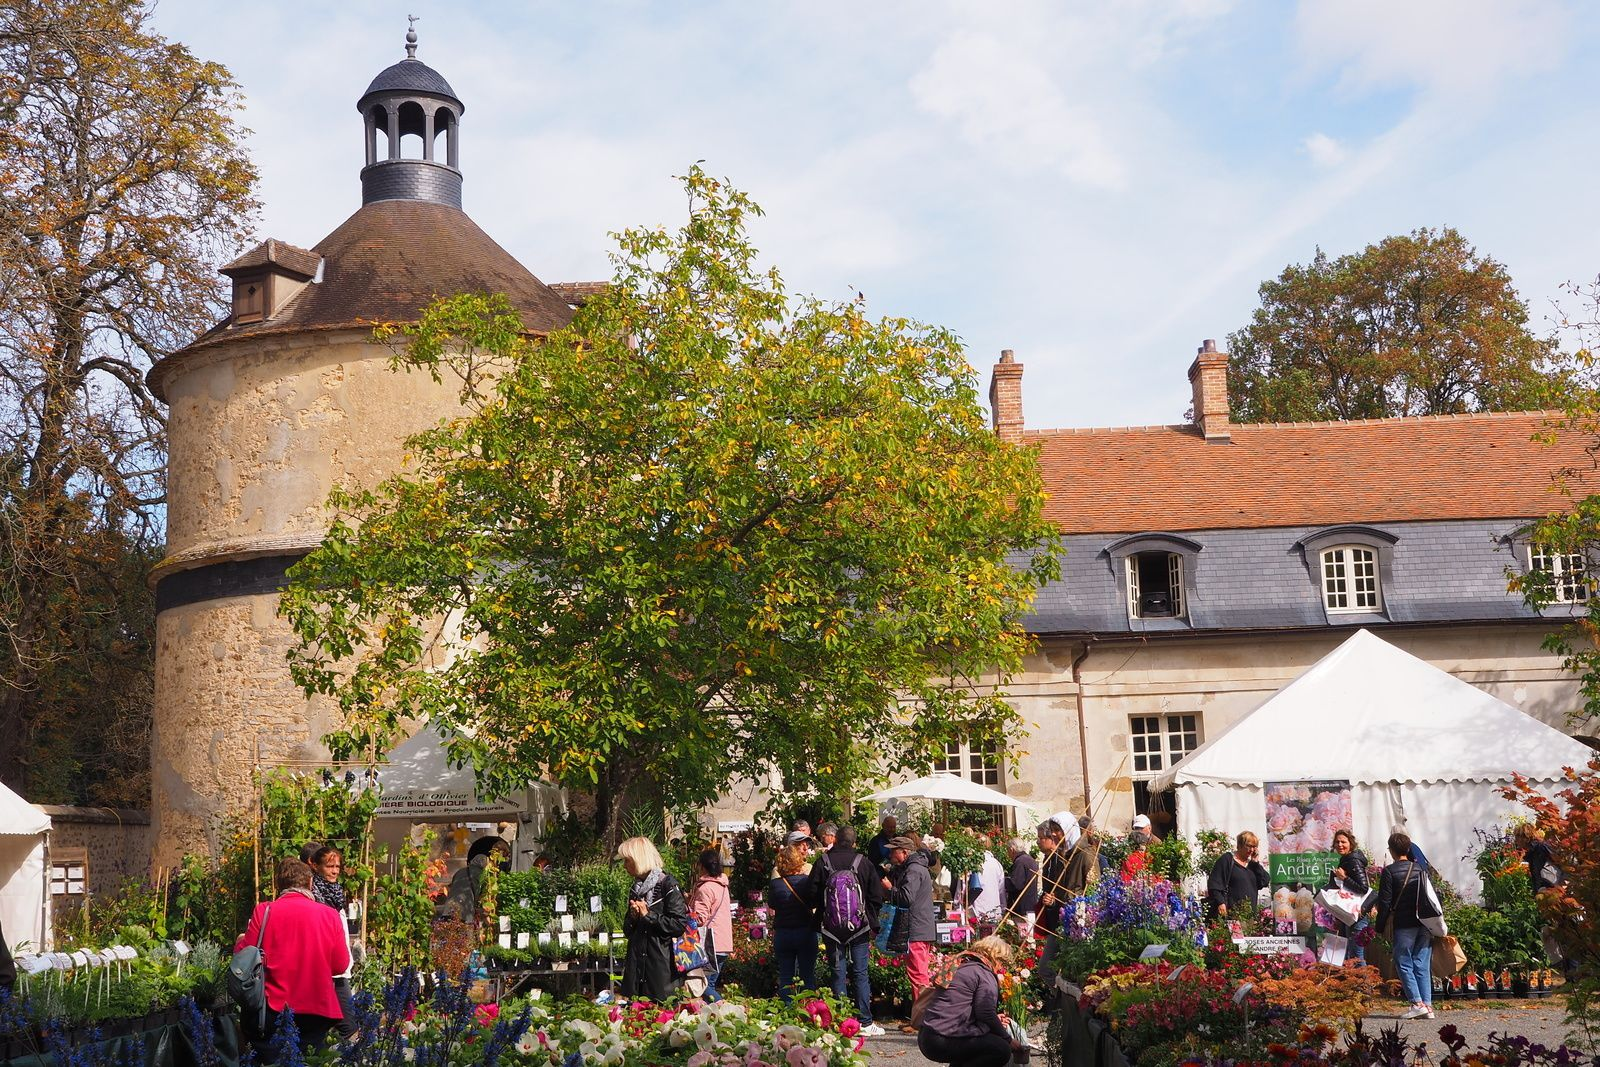 Save the Date : Fête des Plantes de Saint Jean de Beauregard, les 12, 13 et 14 avril 2019